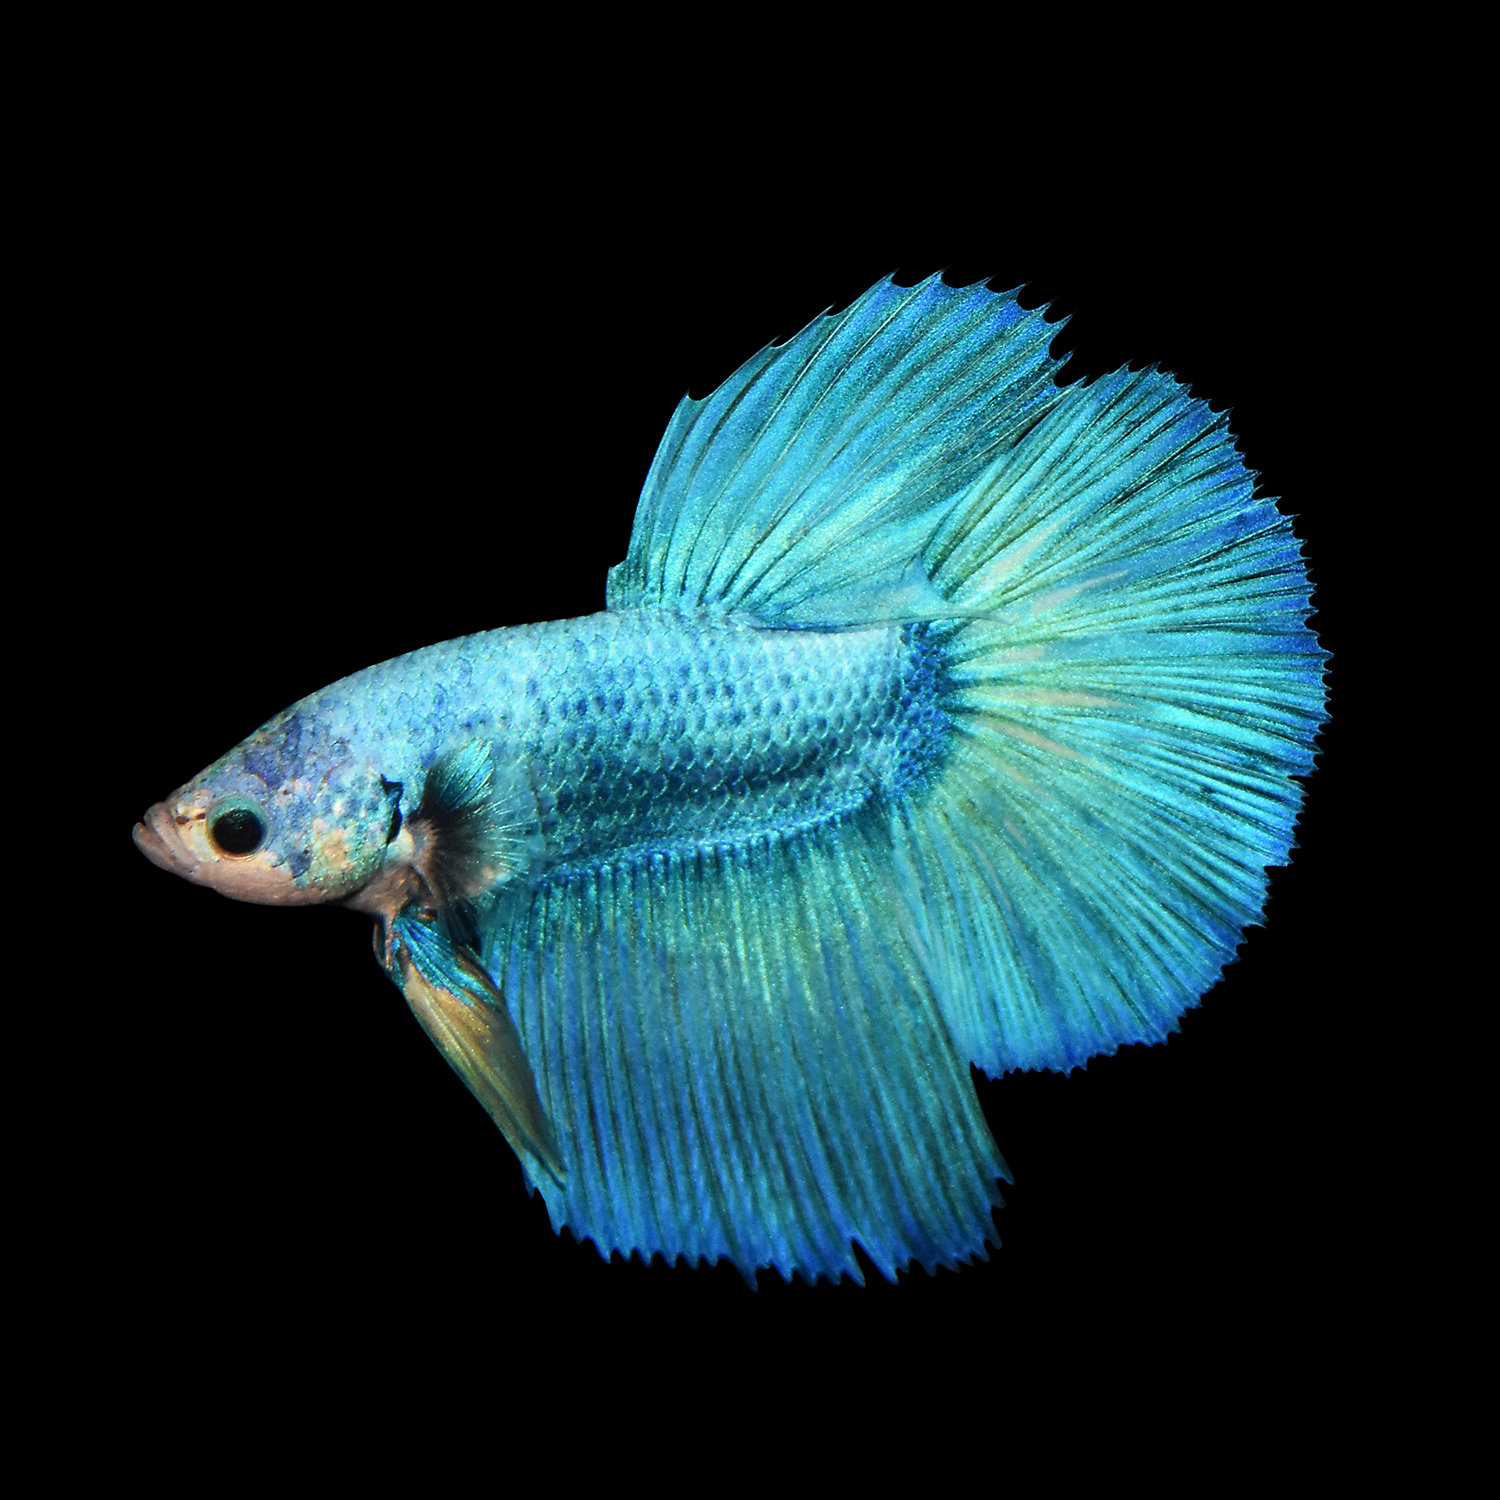 Male Deltatail Betta Betta Splendens X Large